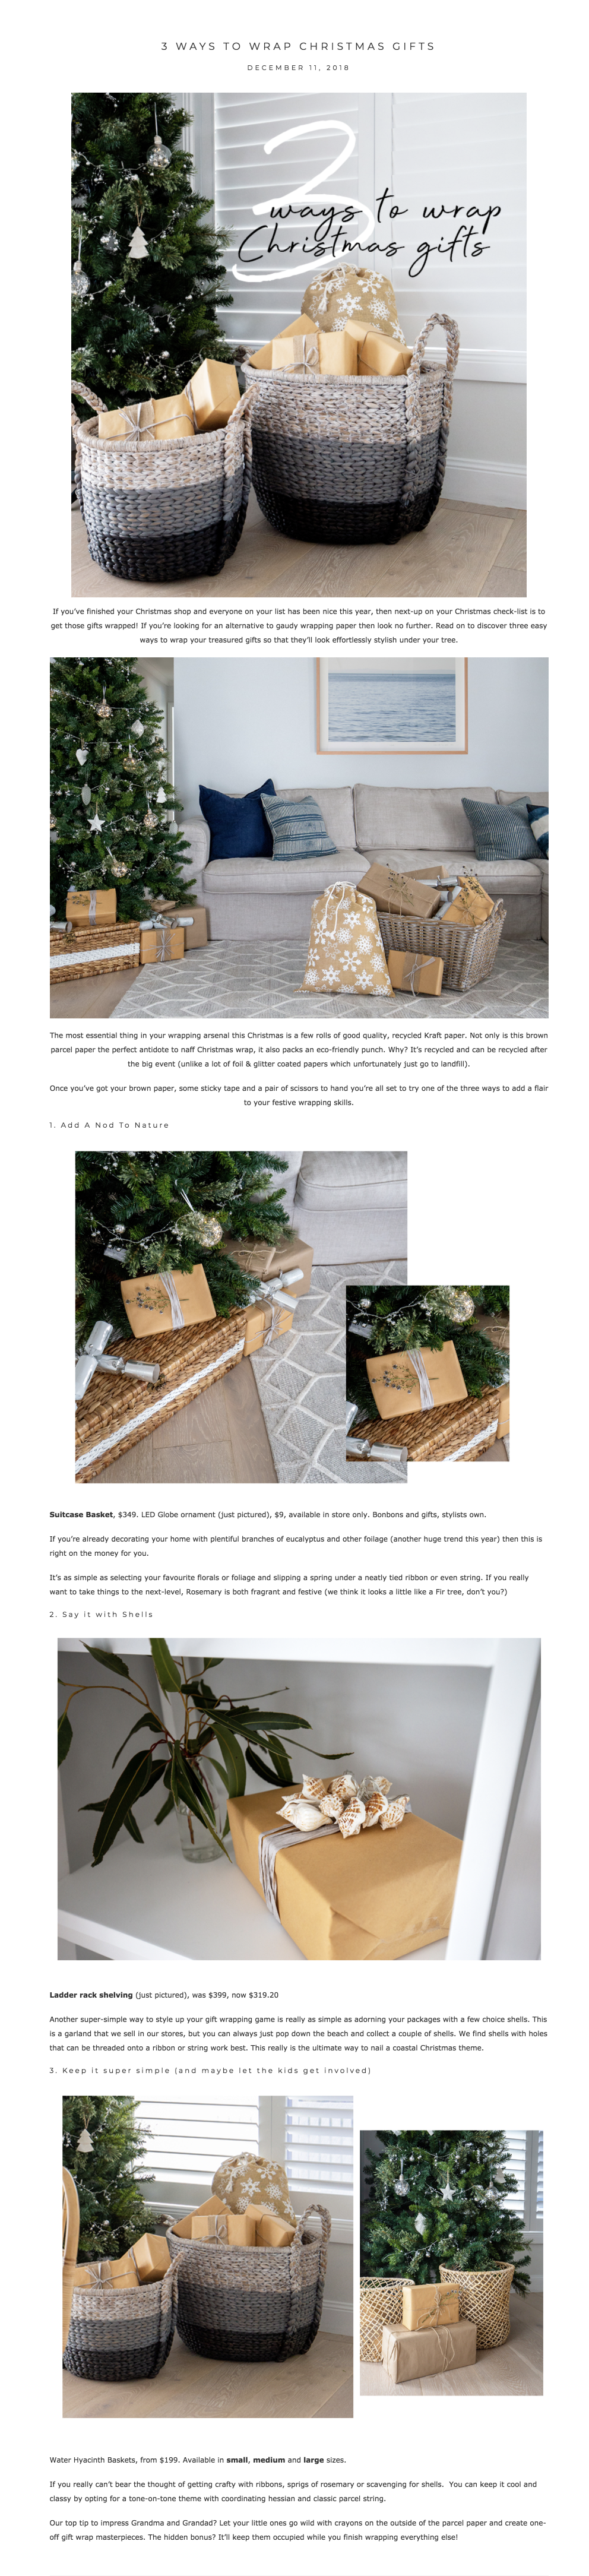 TheBeachFurniture_ChristmasBlog2.png